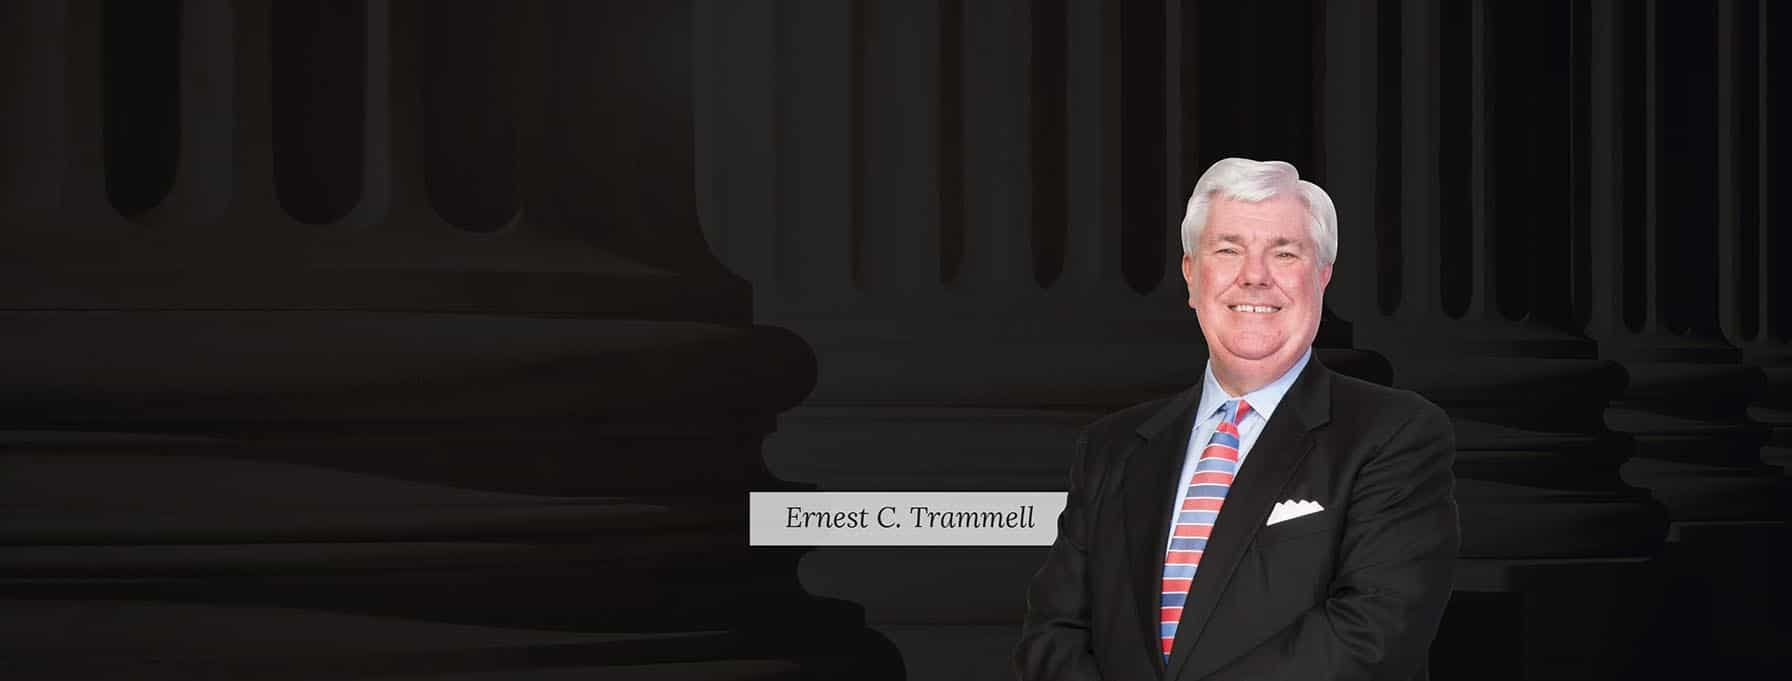 Ernest C. Trammell - Lawyer at Trammell & Mills Law Firm